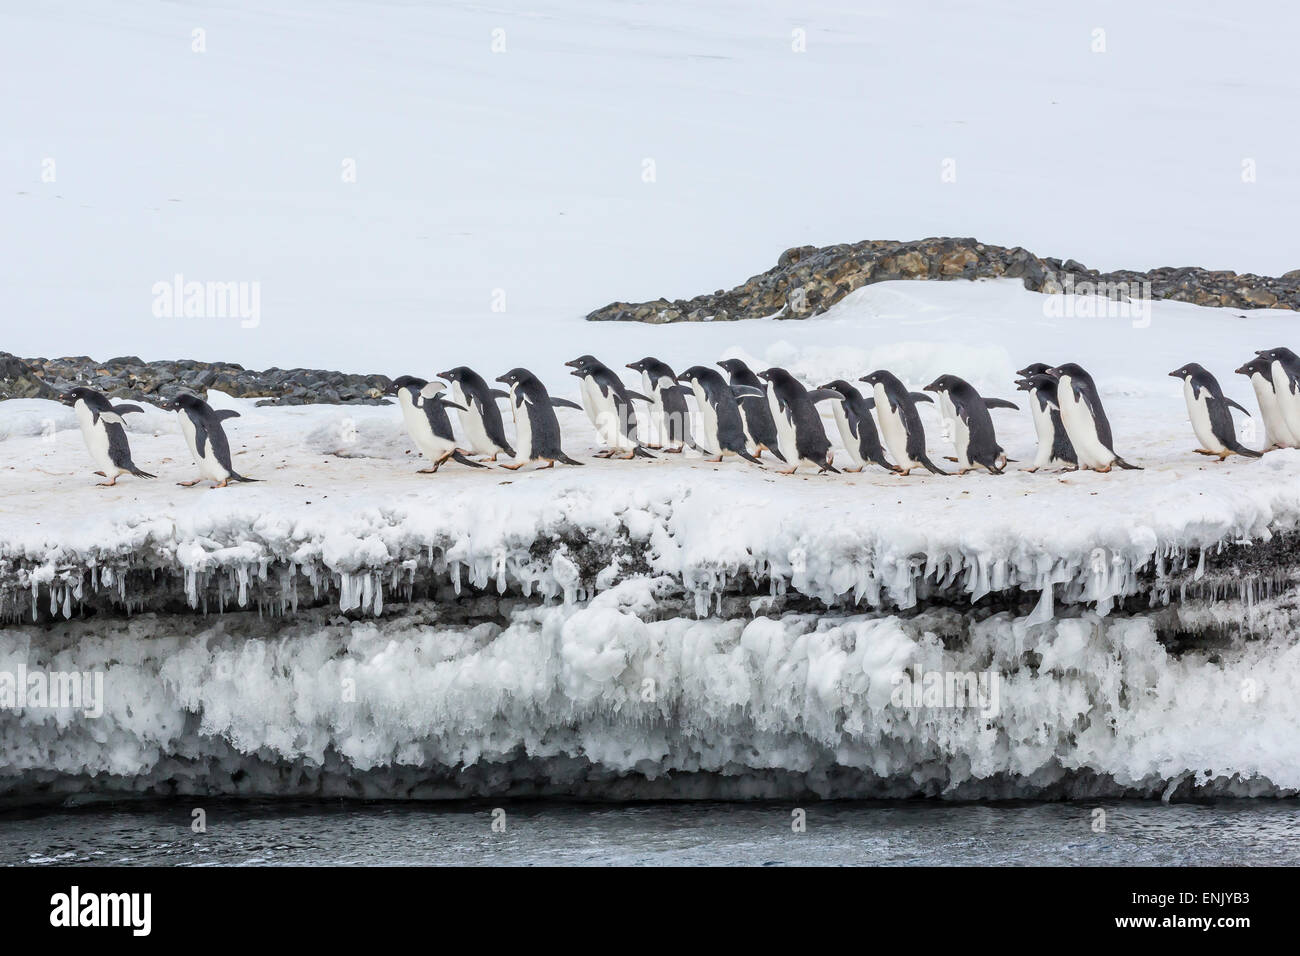 Adelie penguins (Pygoscelis adeliae) at breeding colony at Brown Bluff, Antarctica, Southern Ocean, Polar Regions Stock Photo